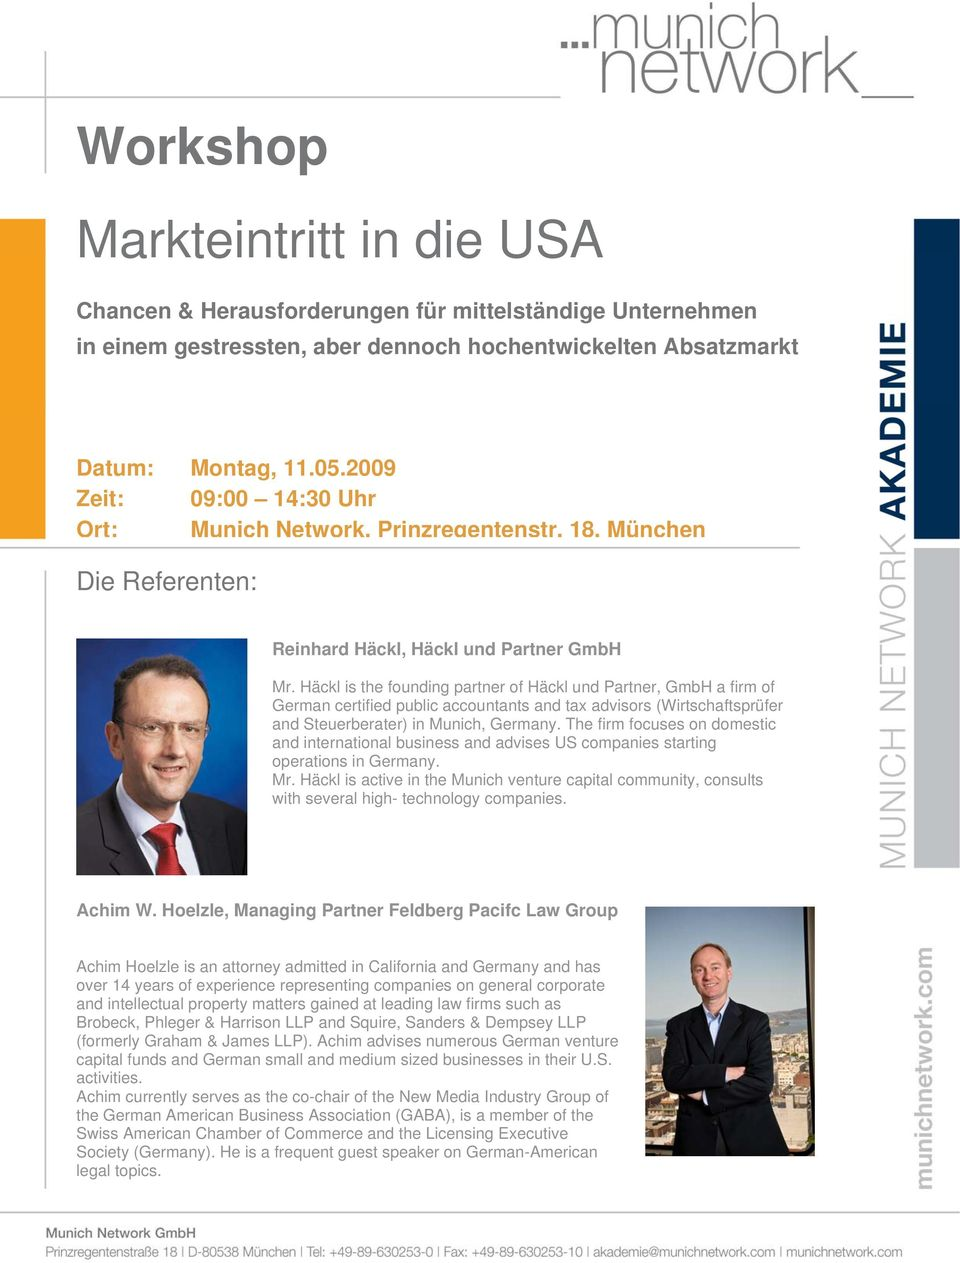 The firm focuses on domestic and international business and advises US companies starting operations in Germany. Mr.